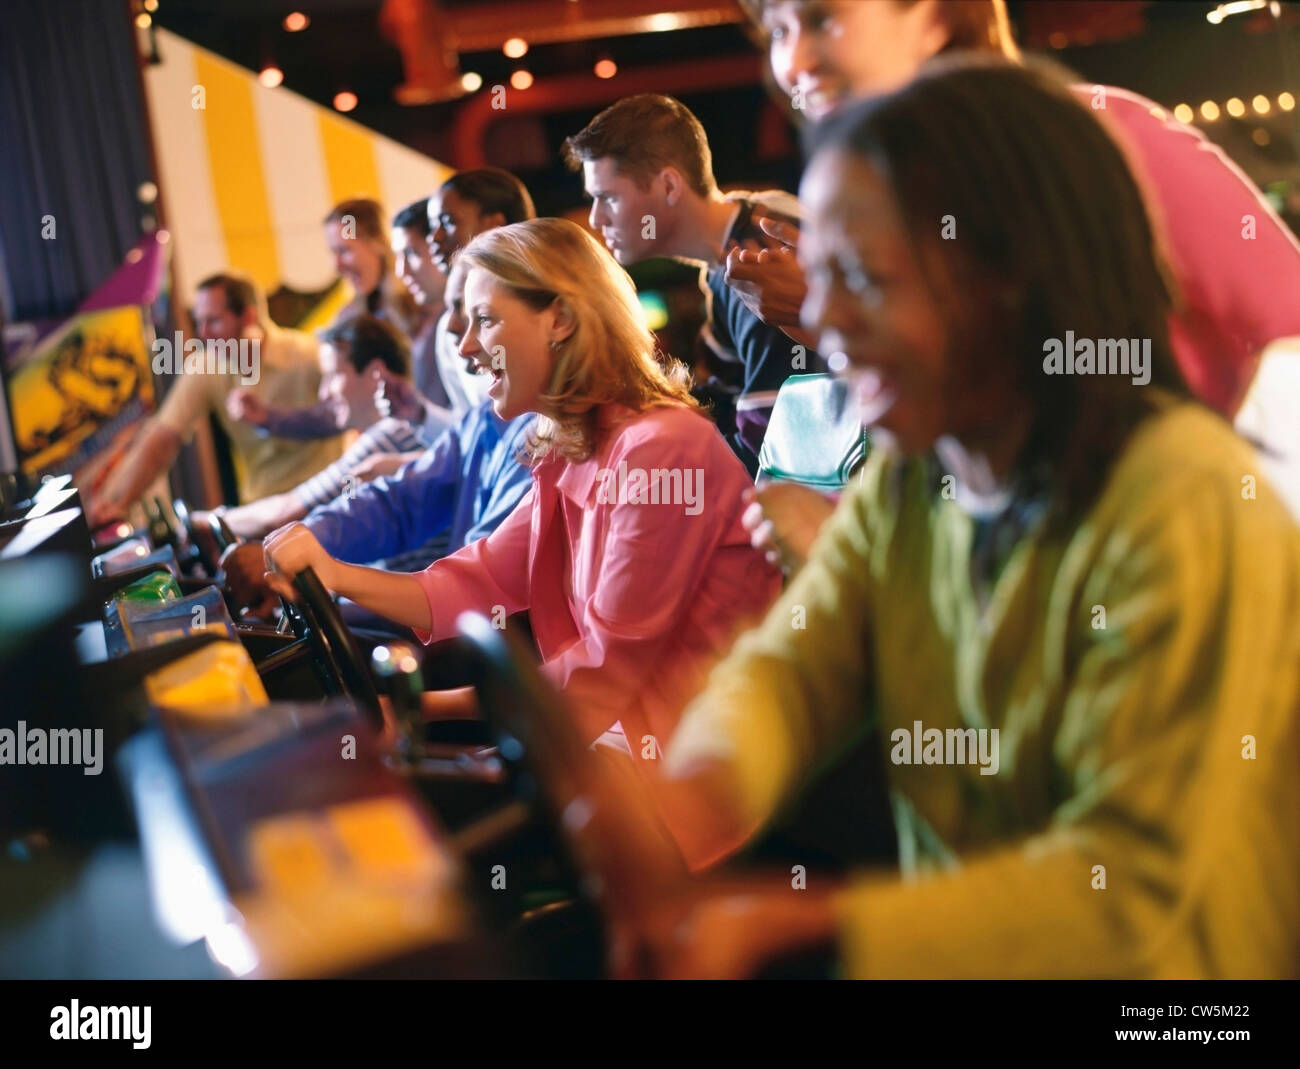 People playing video games in an amusement arcade - Stock Image